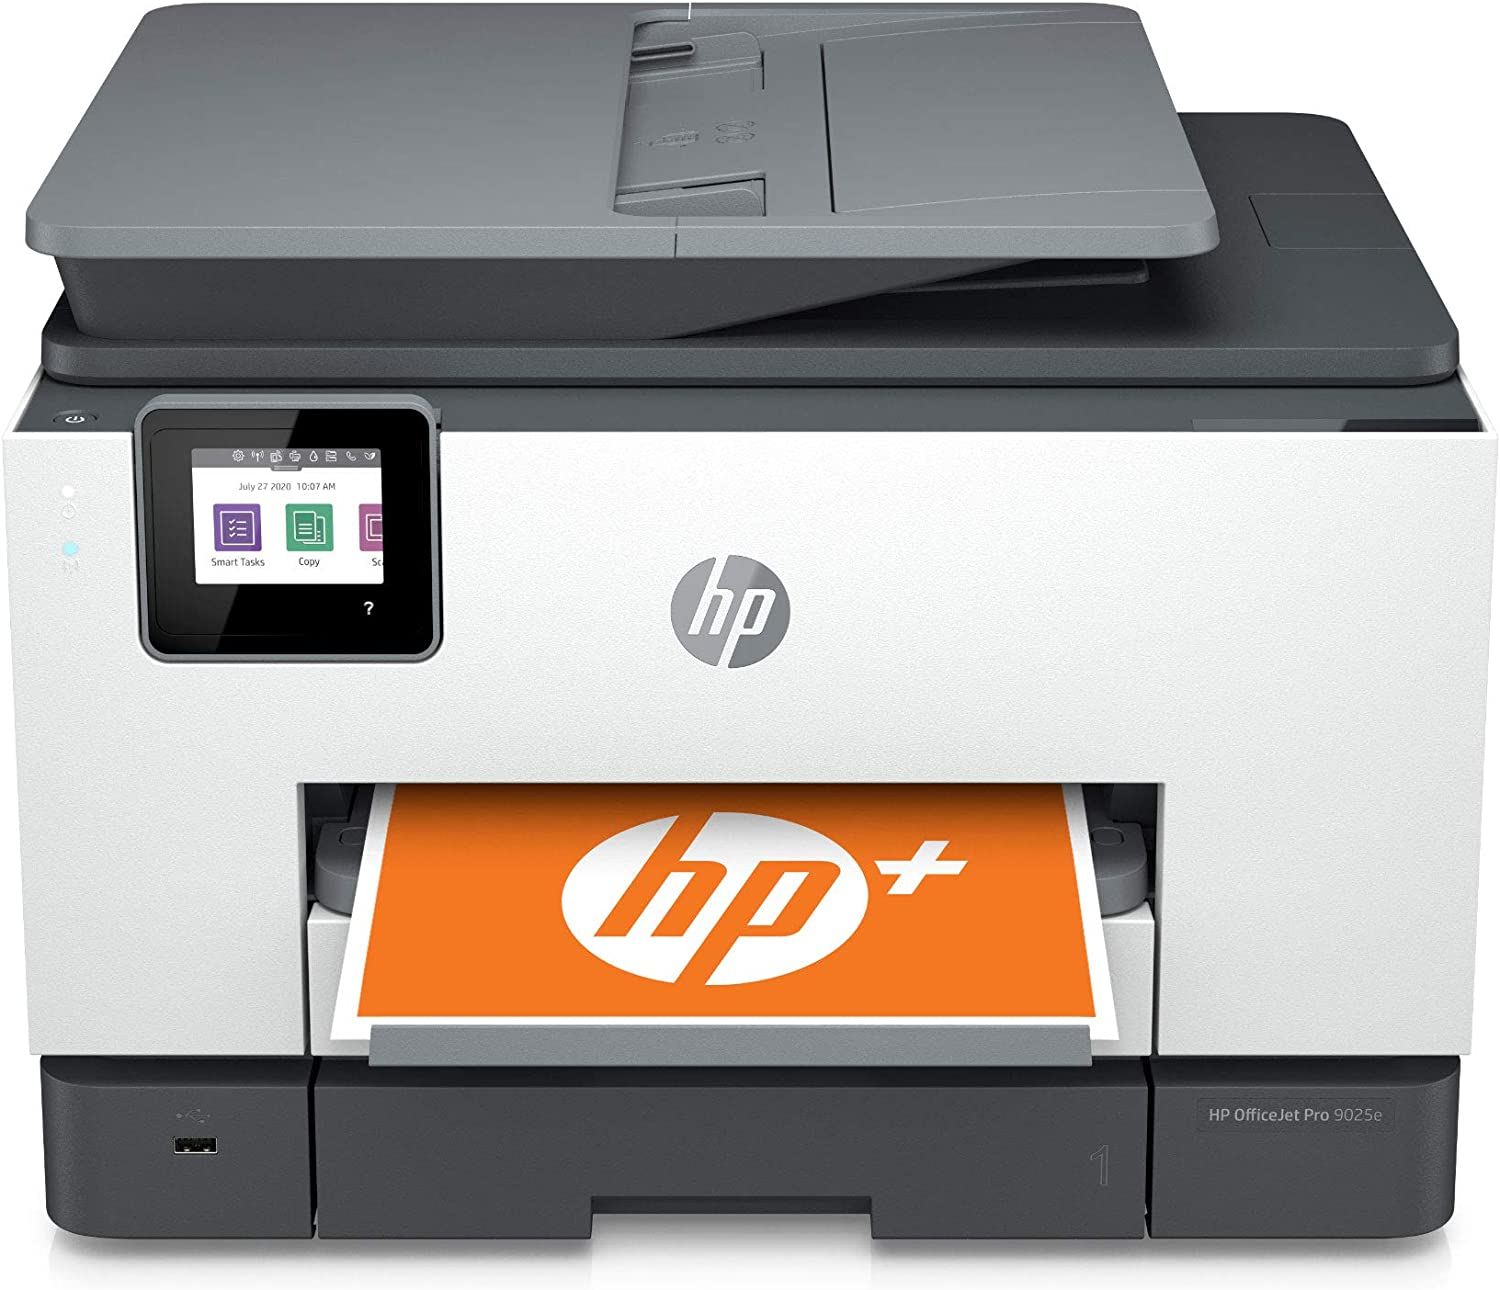 HP OfficeJet Pro 9025e All-in-One Wireless Color Printer for home office, with bonus 6 months free Instant Ink with HP+(1G5M0A)